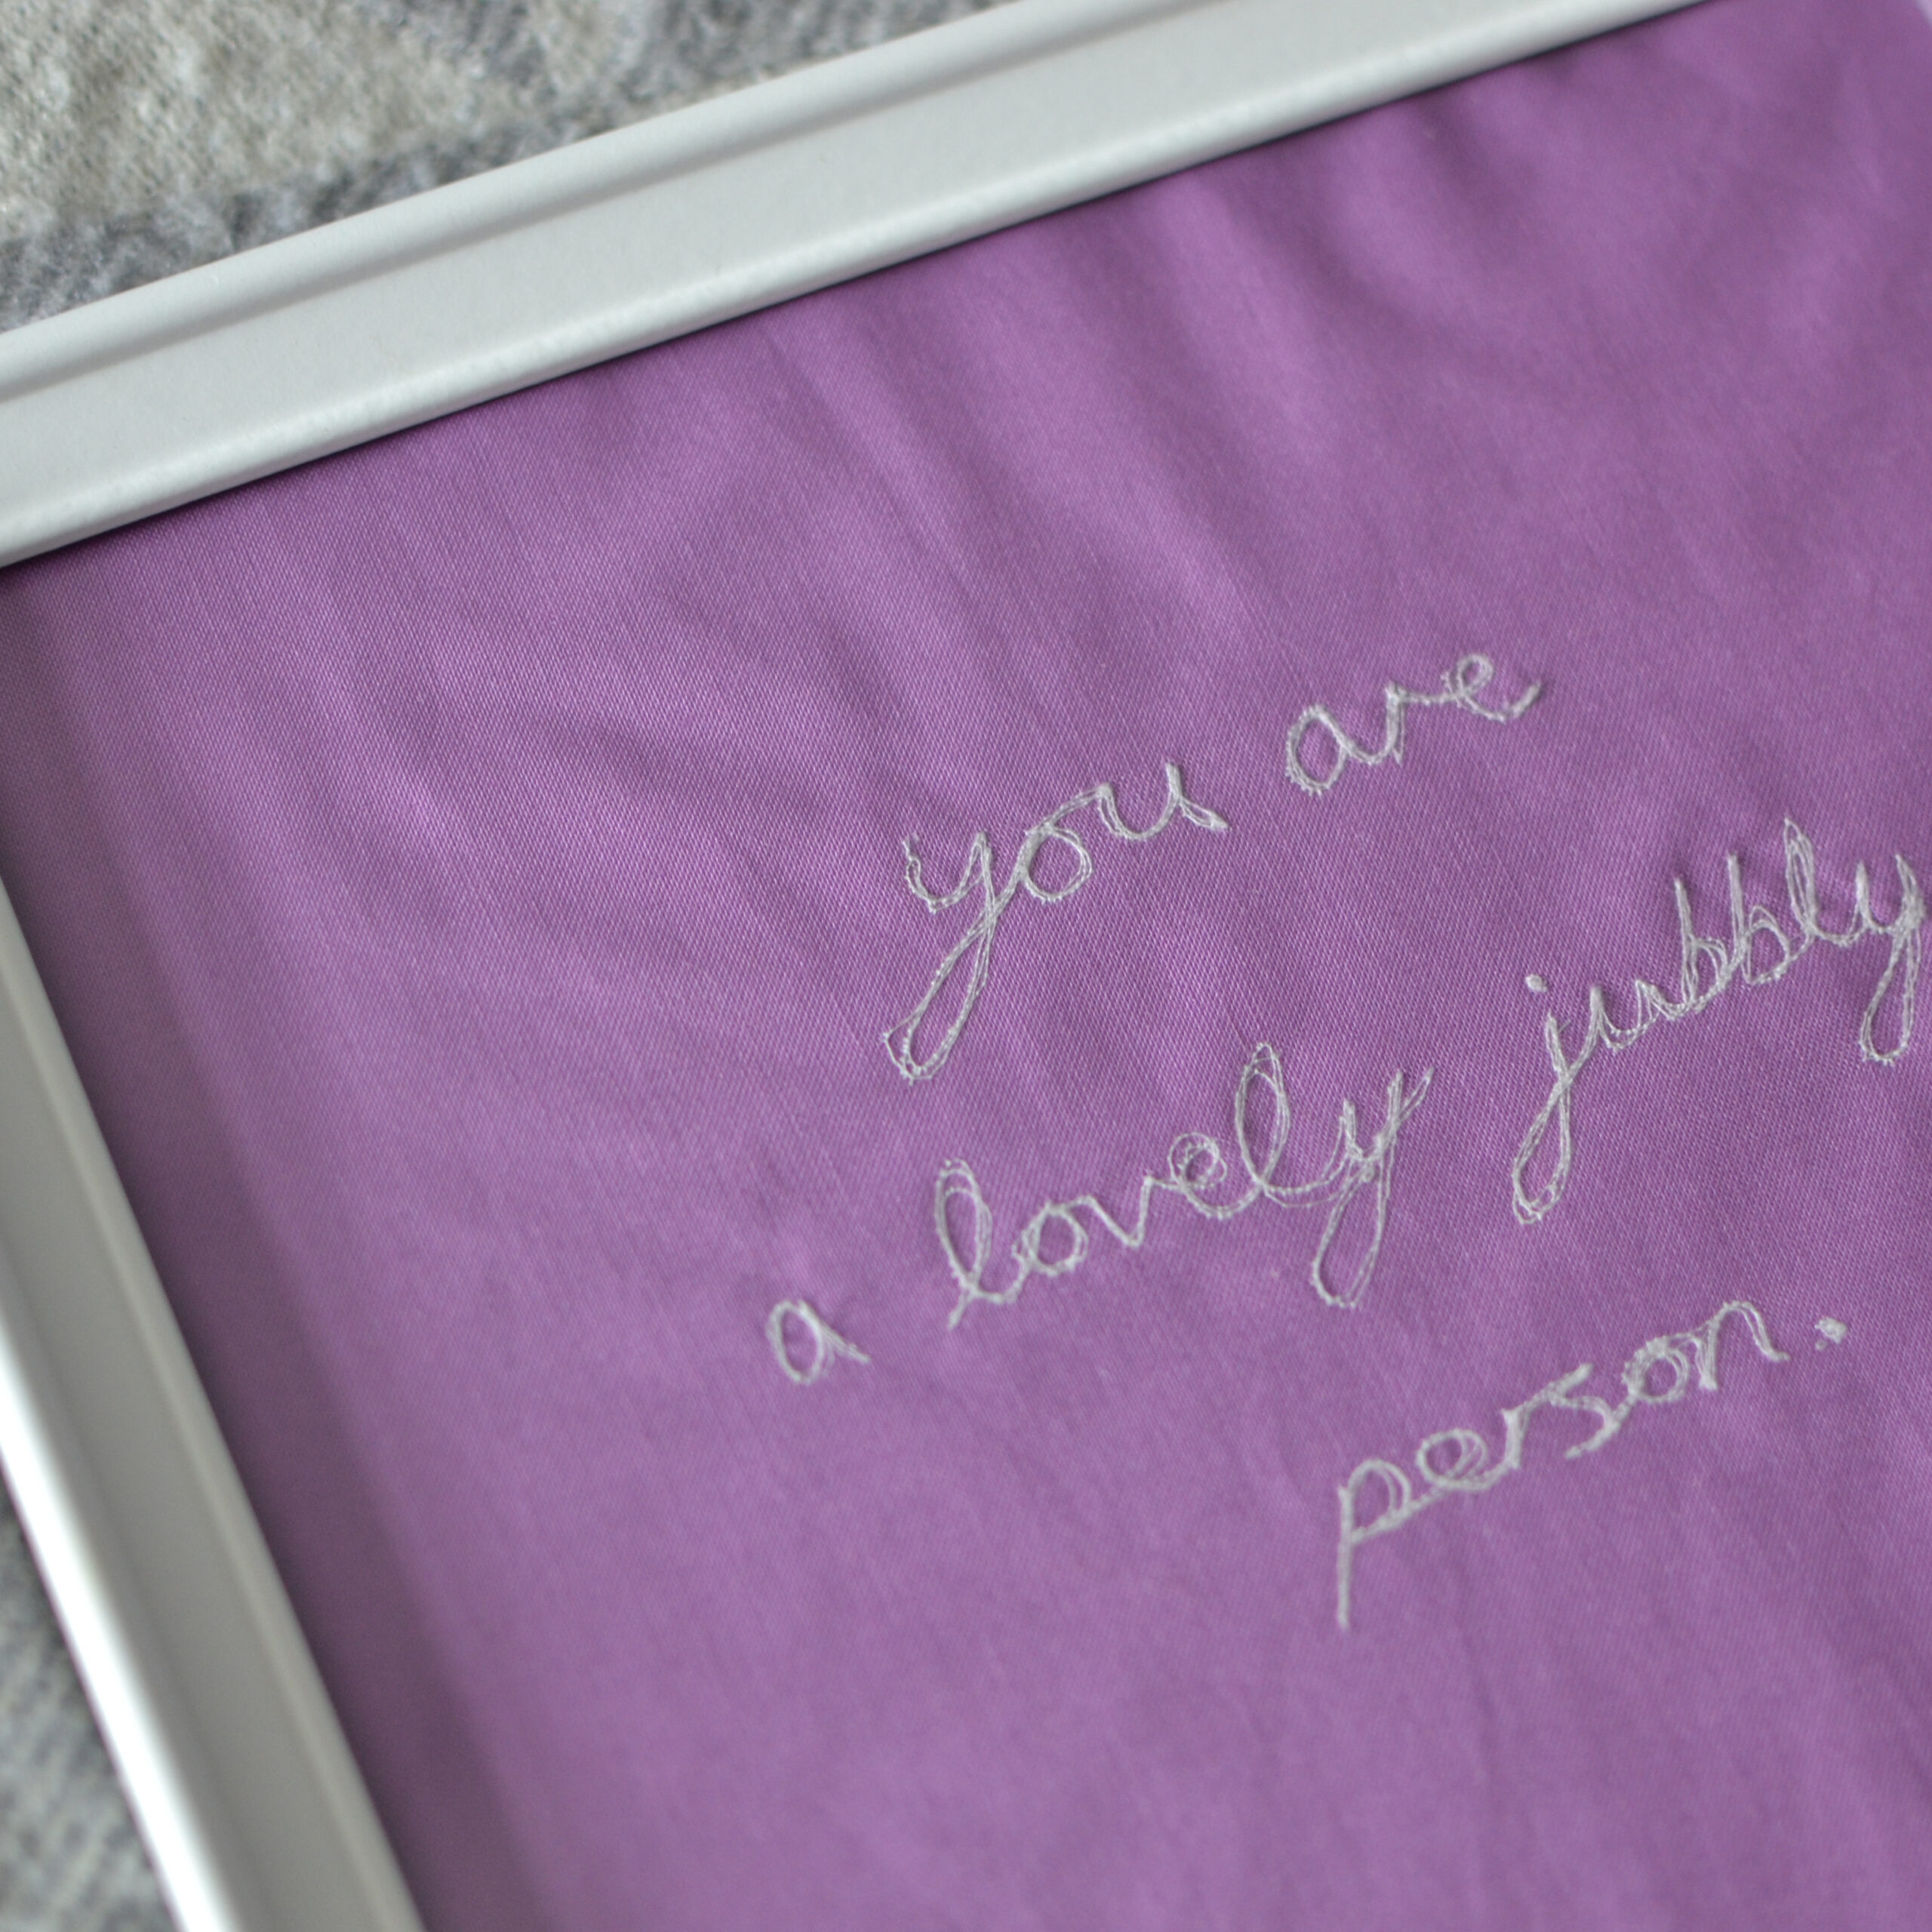 framed bright purple textile artwork by loaf & bear - embroidered text says 'you are a lovely jubbly person'